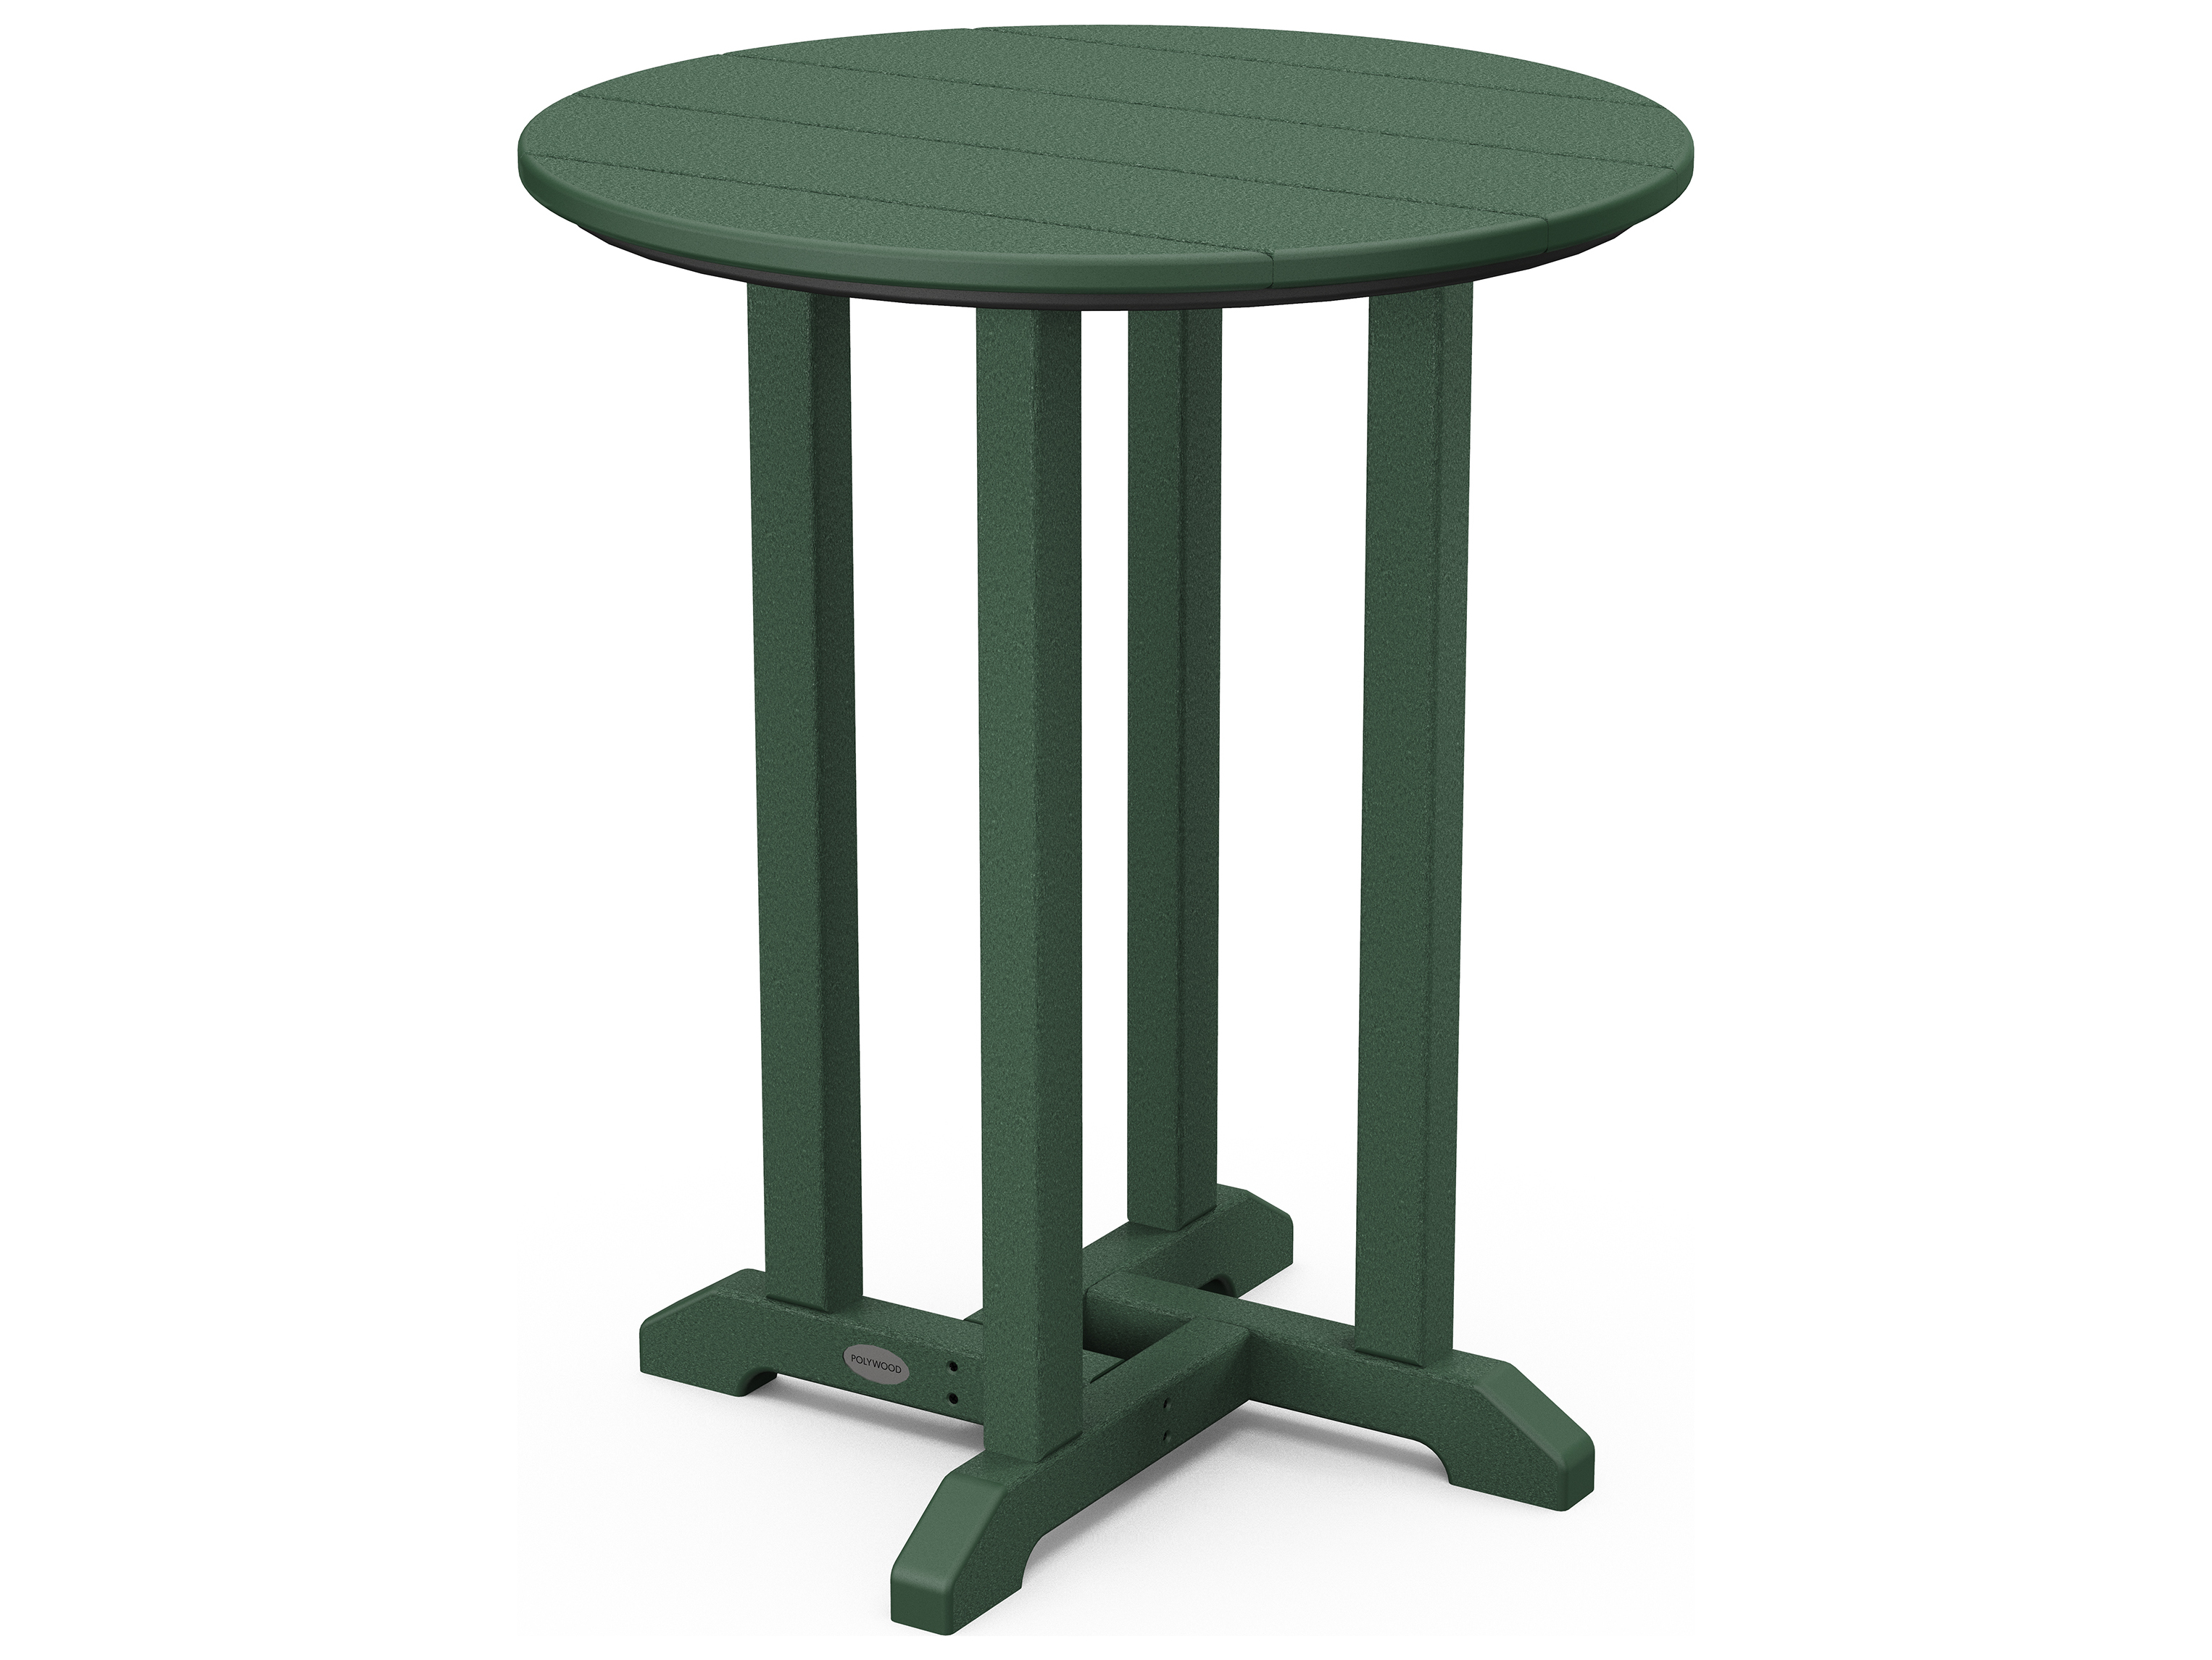 Polywood® Traditional Recycled Plastic 24 Round Bistro. Diy Patio Area. Outside Patio Ideas. Paver Patio Quotes. Patio Table With Fire. Concrete Patio Contractors Portland Oregon. The Patio Restaurant Karachi Menu. Patio Table Lazy Susan For Sale. Patio Table Bunnings